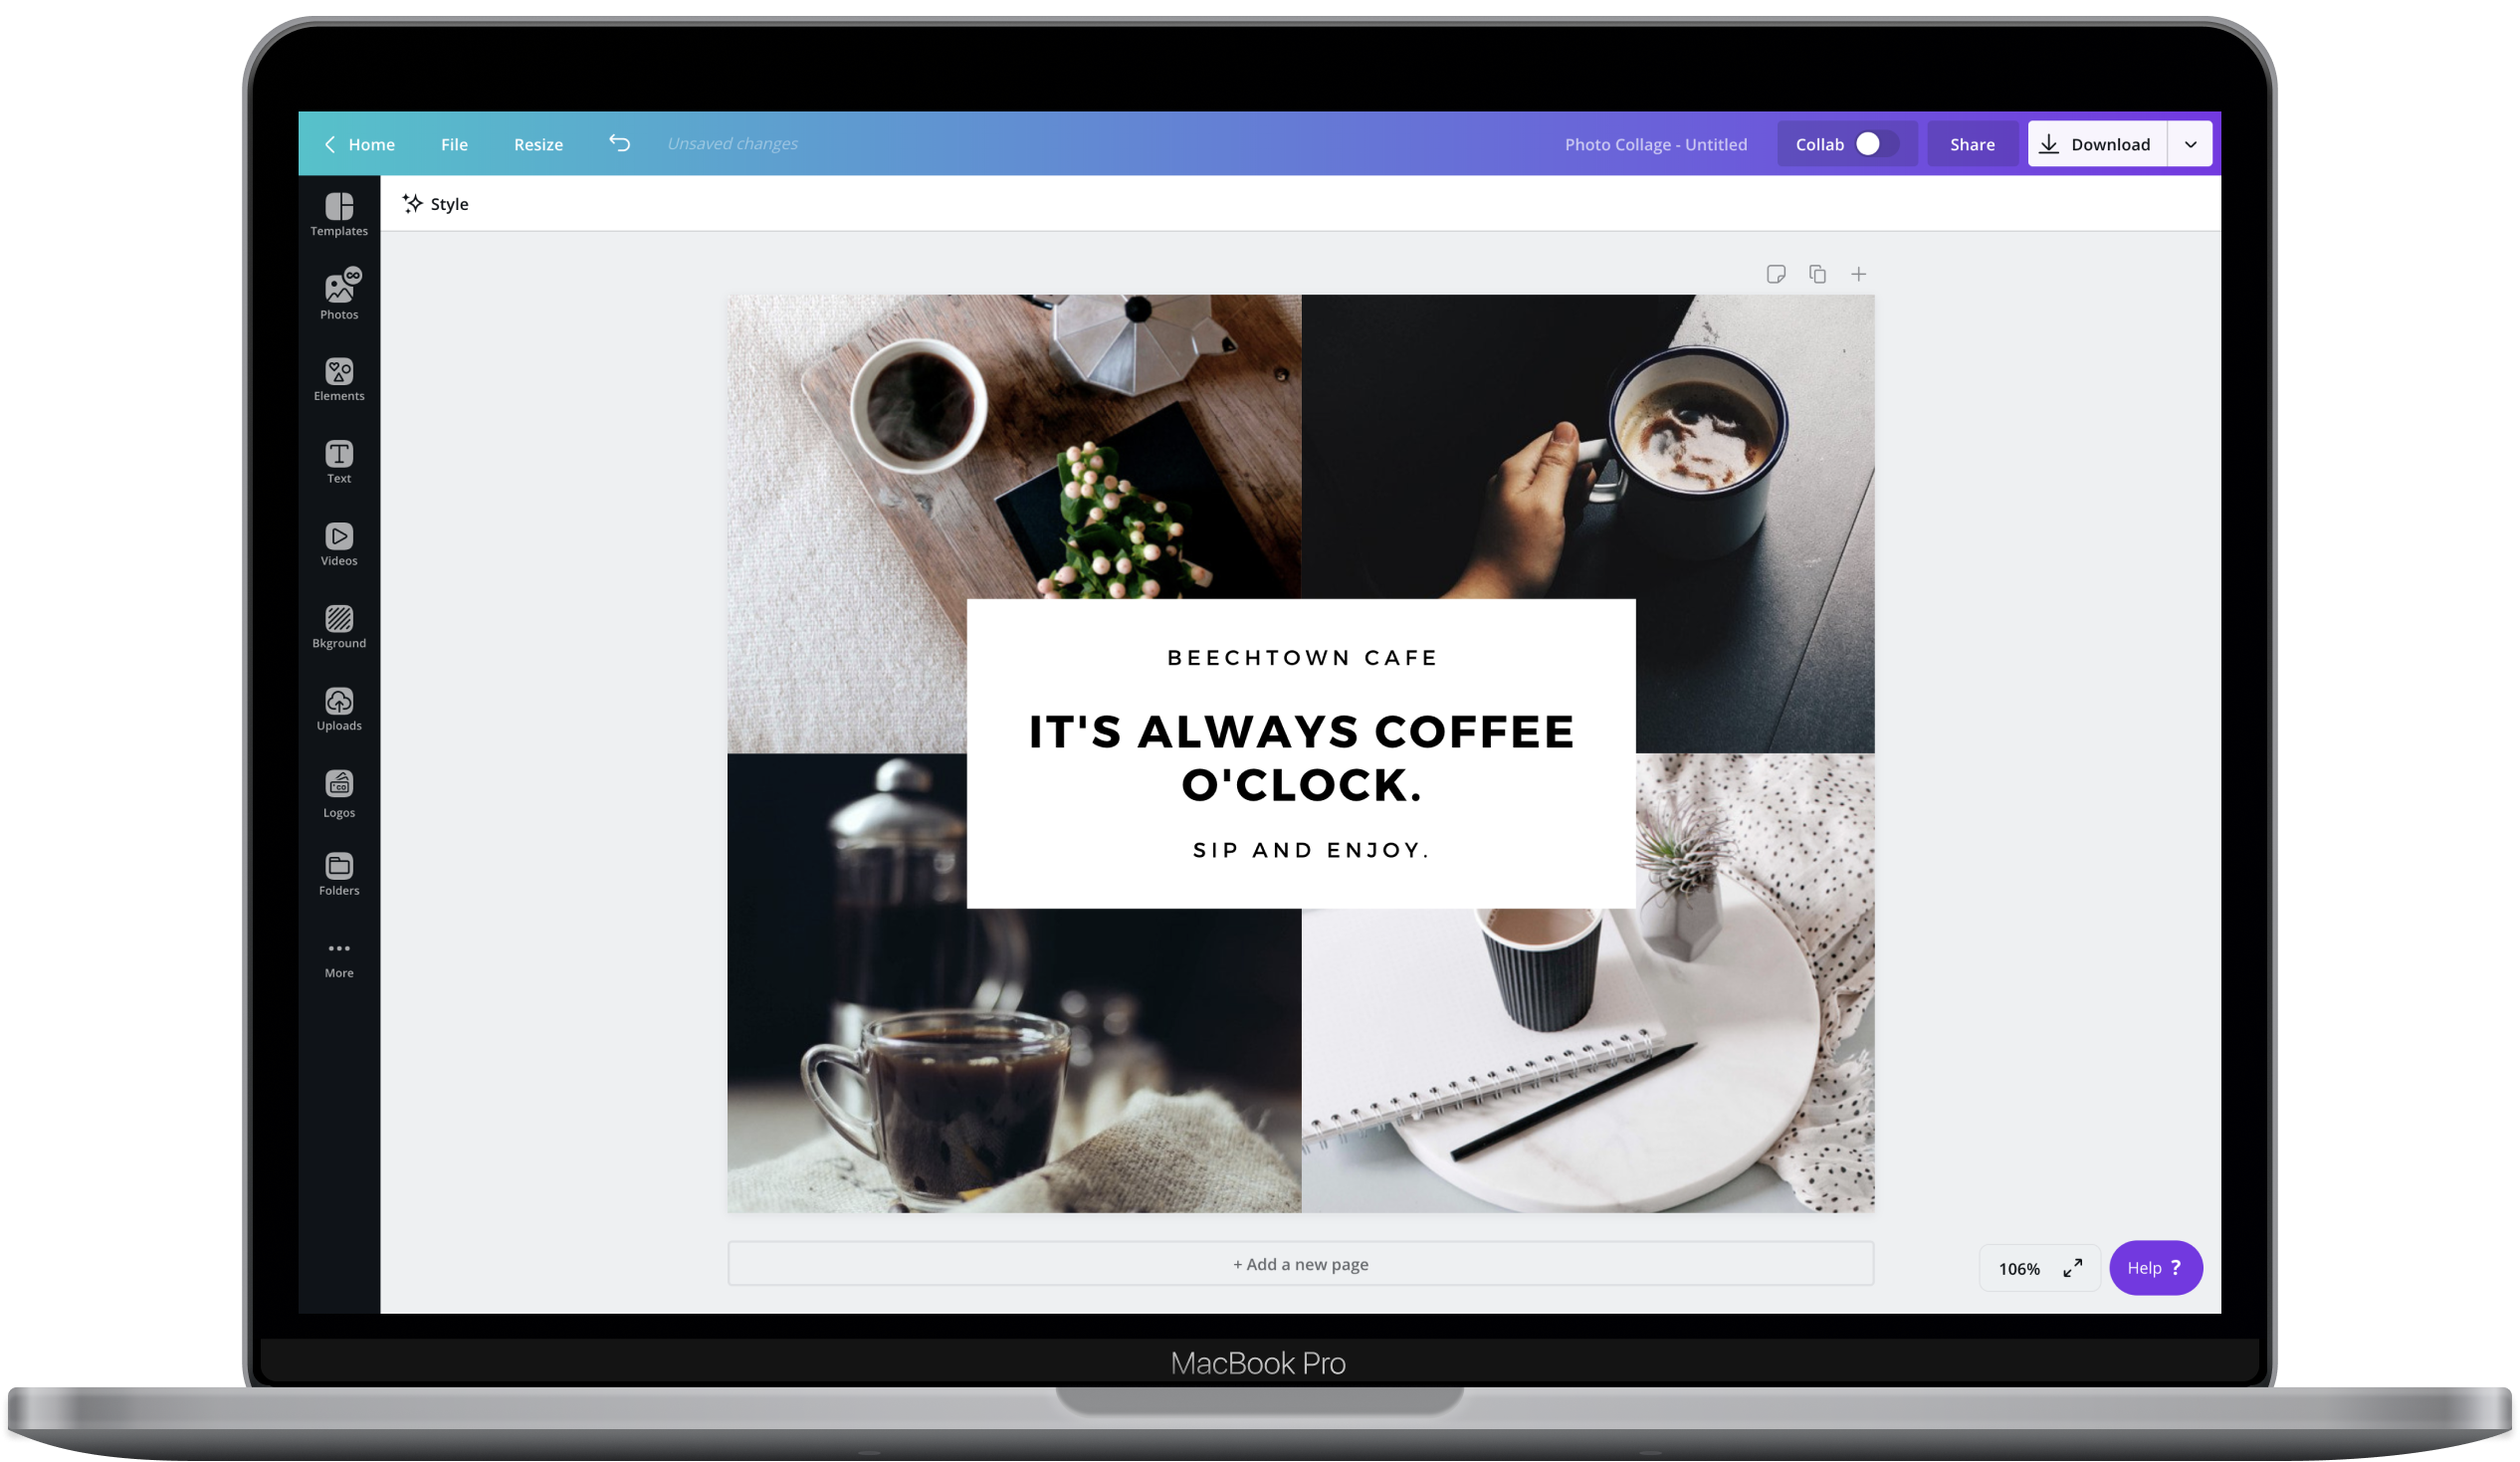 Canva editor showing photo collage design